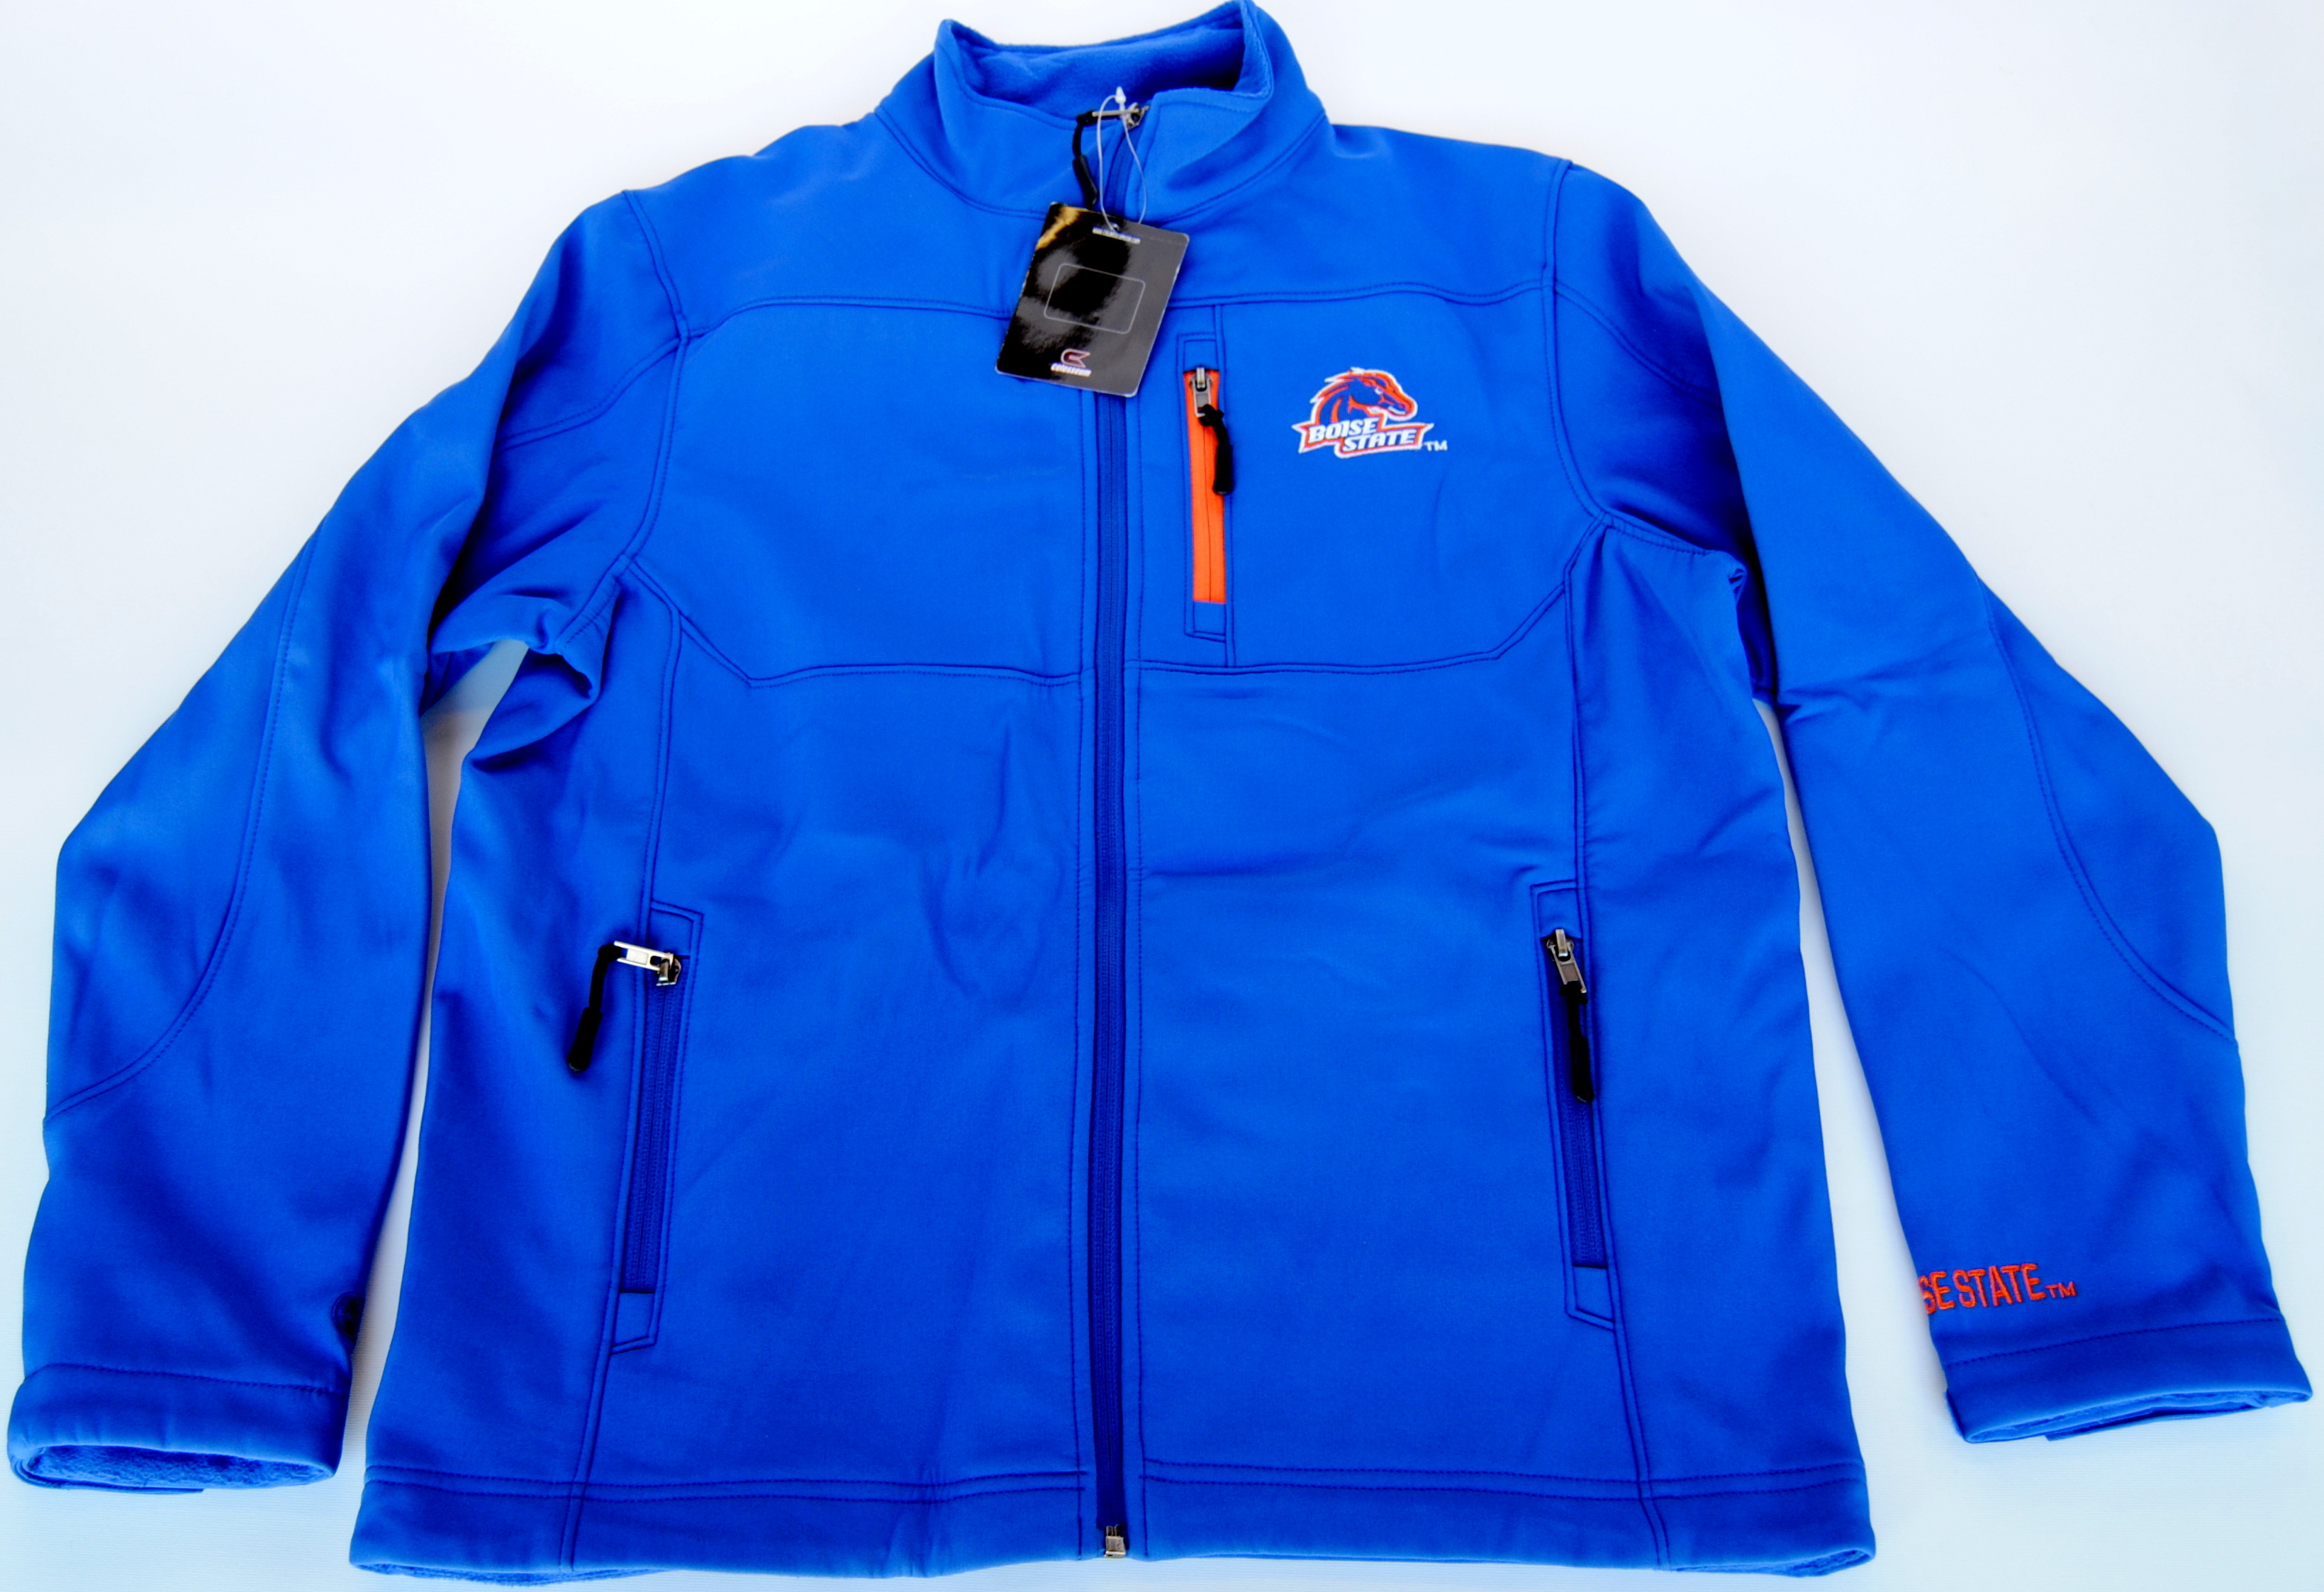 Colosseum Athletics Boise State Broncos Colosseum Blue Youth Zip Front Fleece Jacket 16-18 (L) at Sears.com